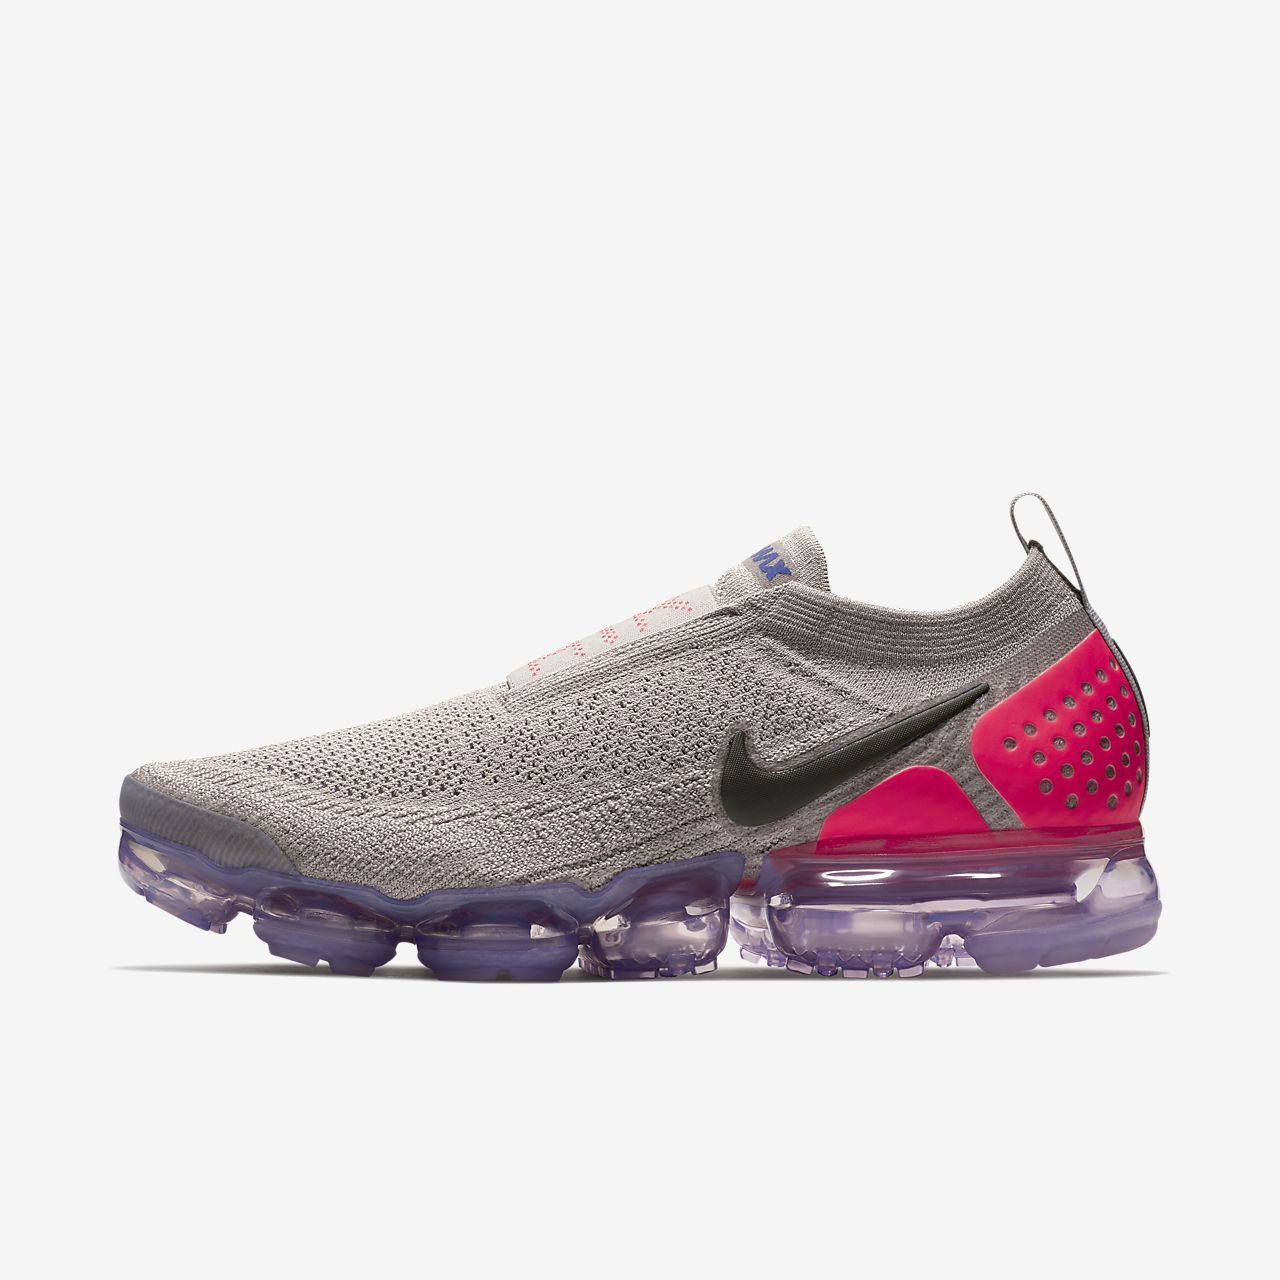 9add75a6a8e70 Nike Air VaporMax Flyknit Moc 2 Shoe. Nike.com IE